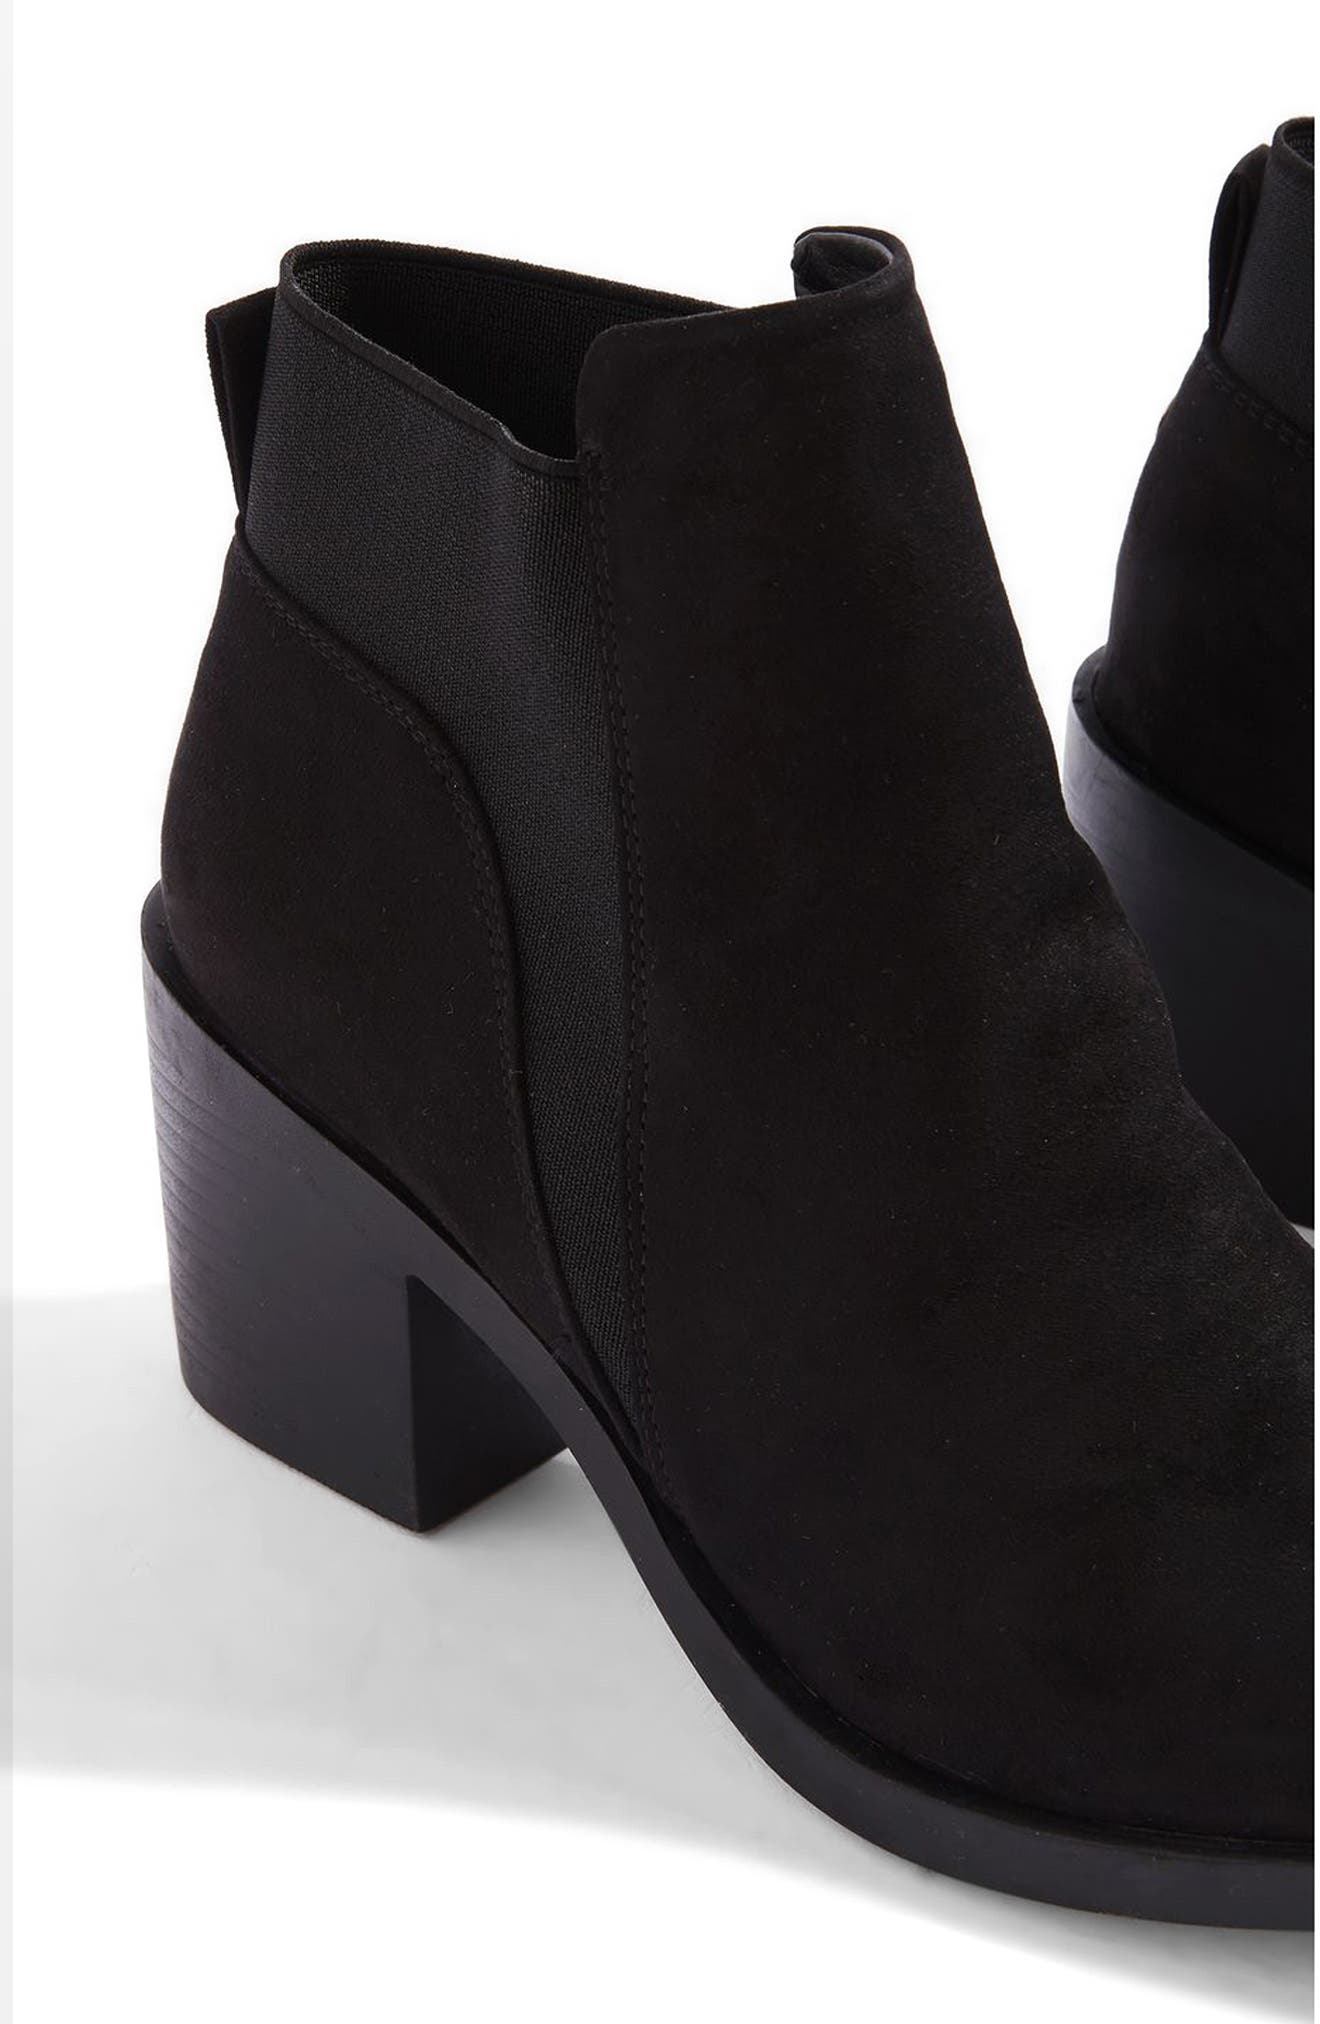 Buddy Block Heel Bootie,                             Alternate thumbnail 3, color,                             Black